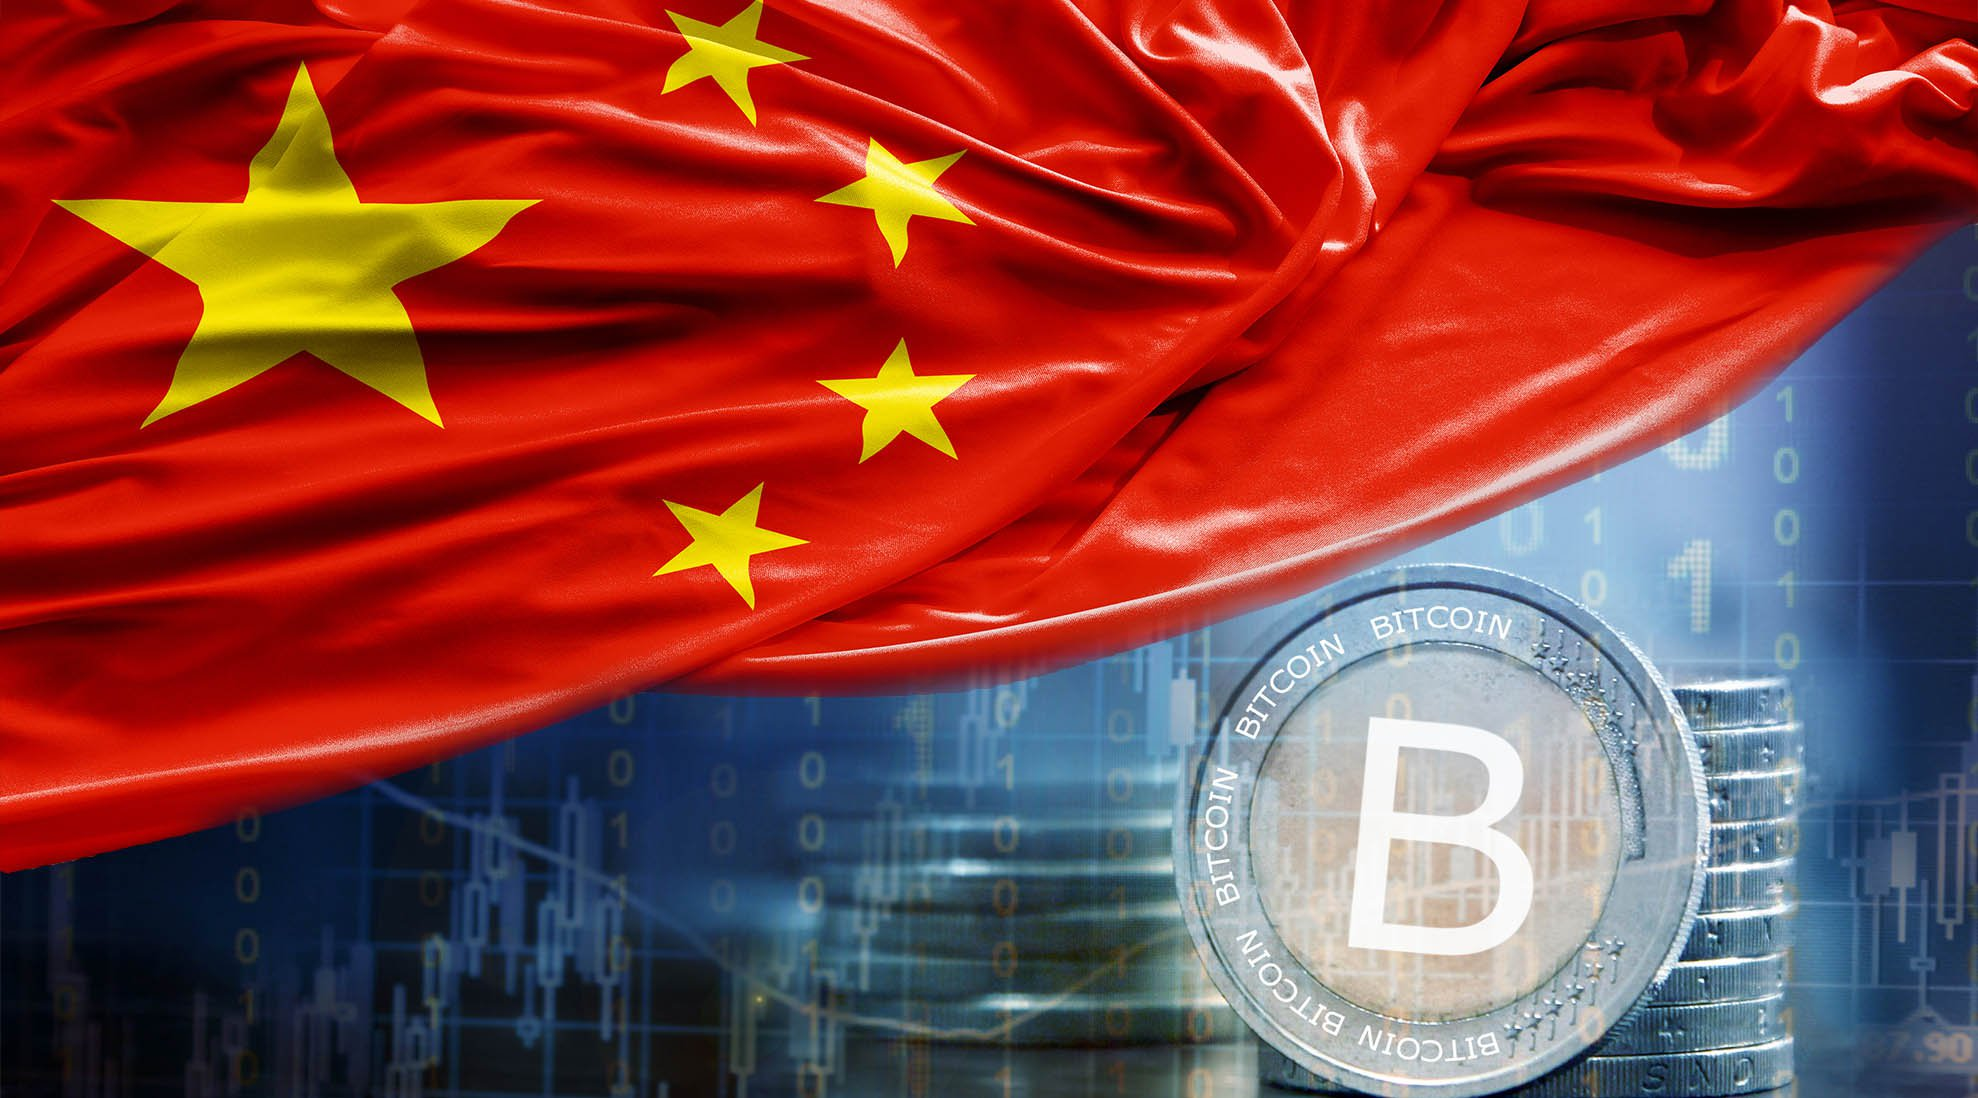 China Crypto Operators Mulling Large-Scale Mergers to Evade Regulation